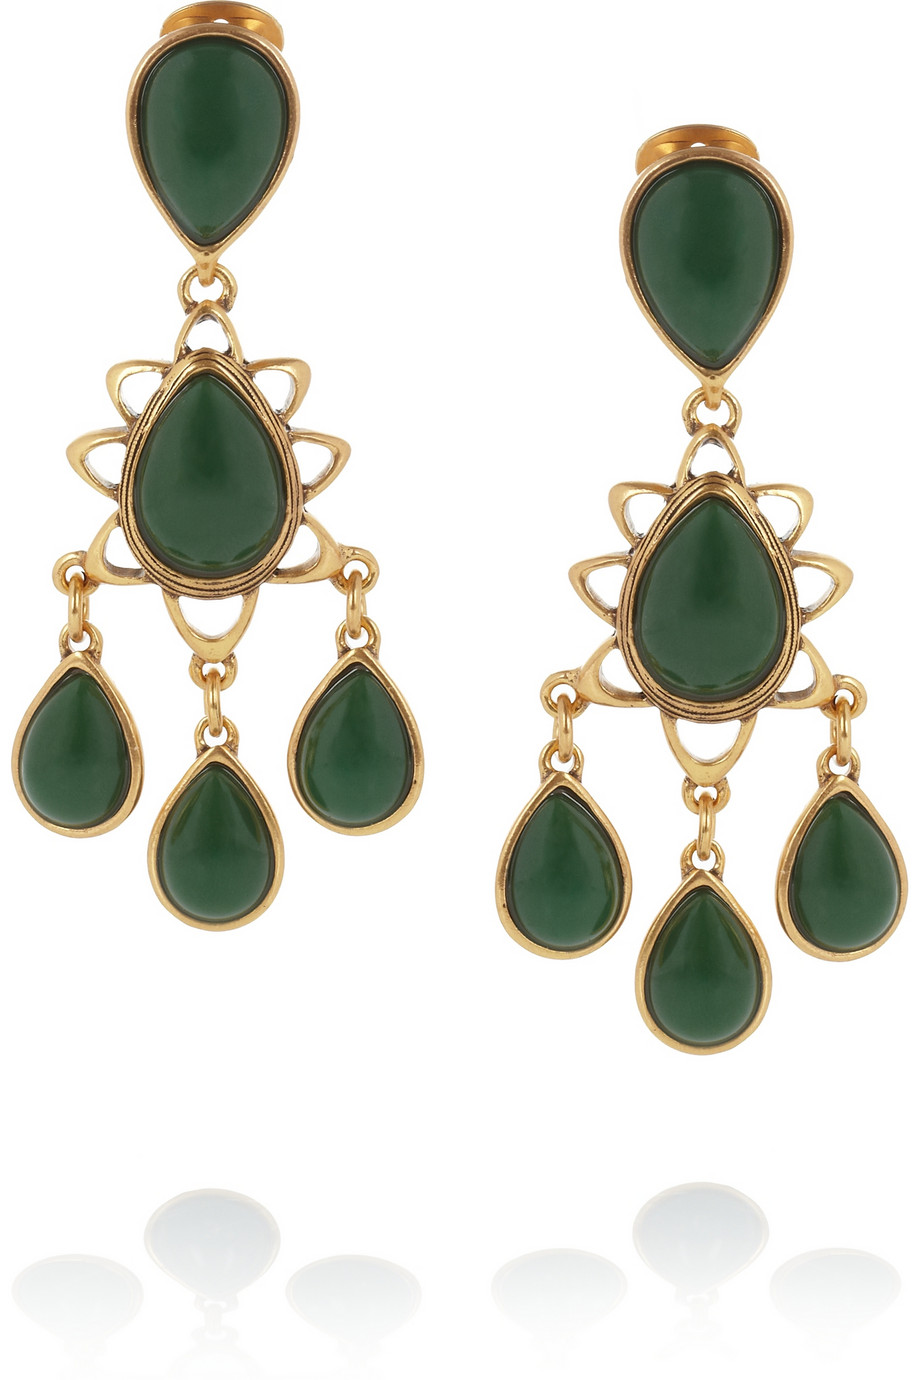 18b847753888 Lyst - Oscar de la Renta Asymmetric Crystal Clip Earrings in Green